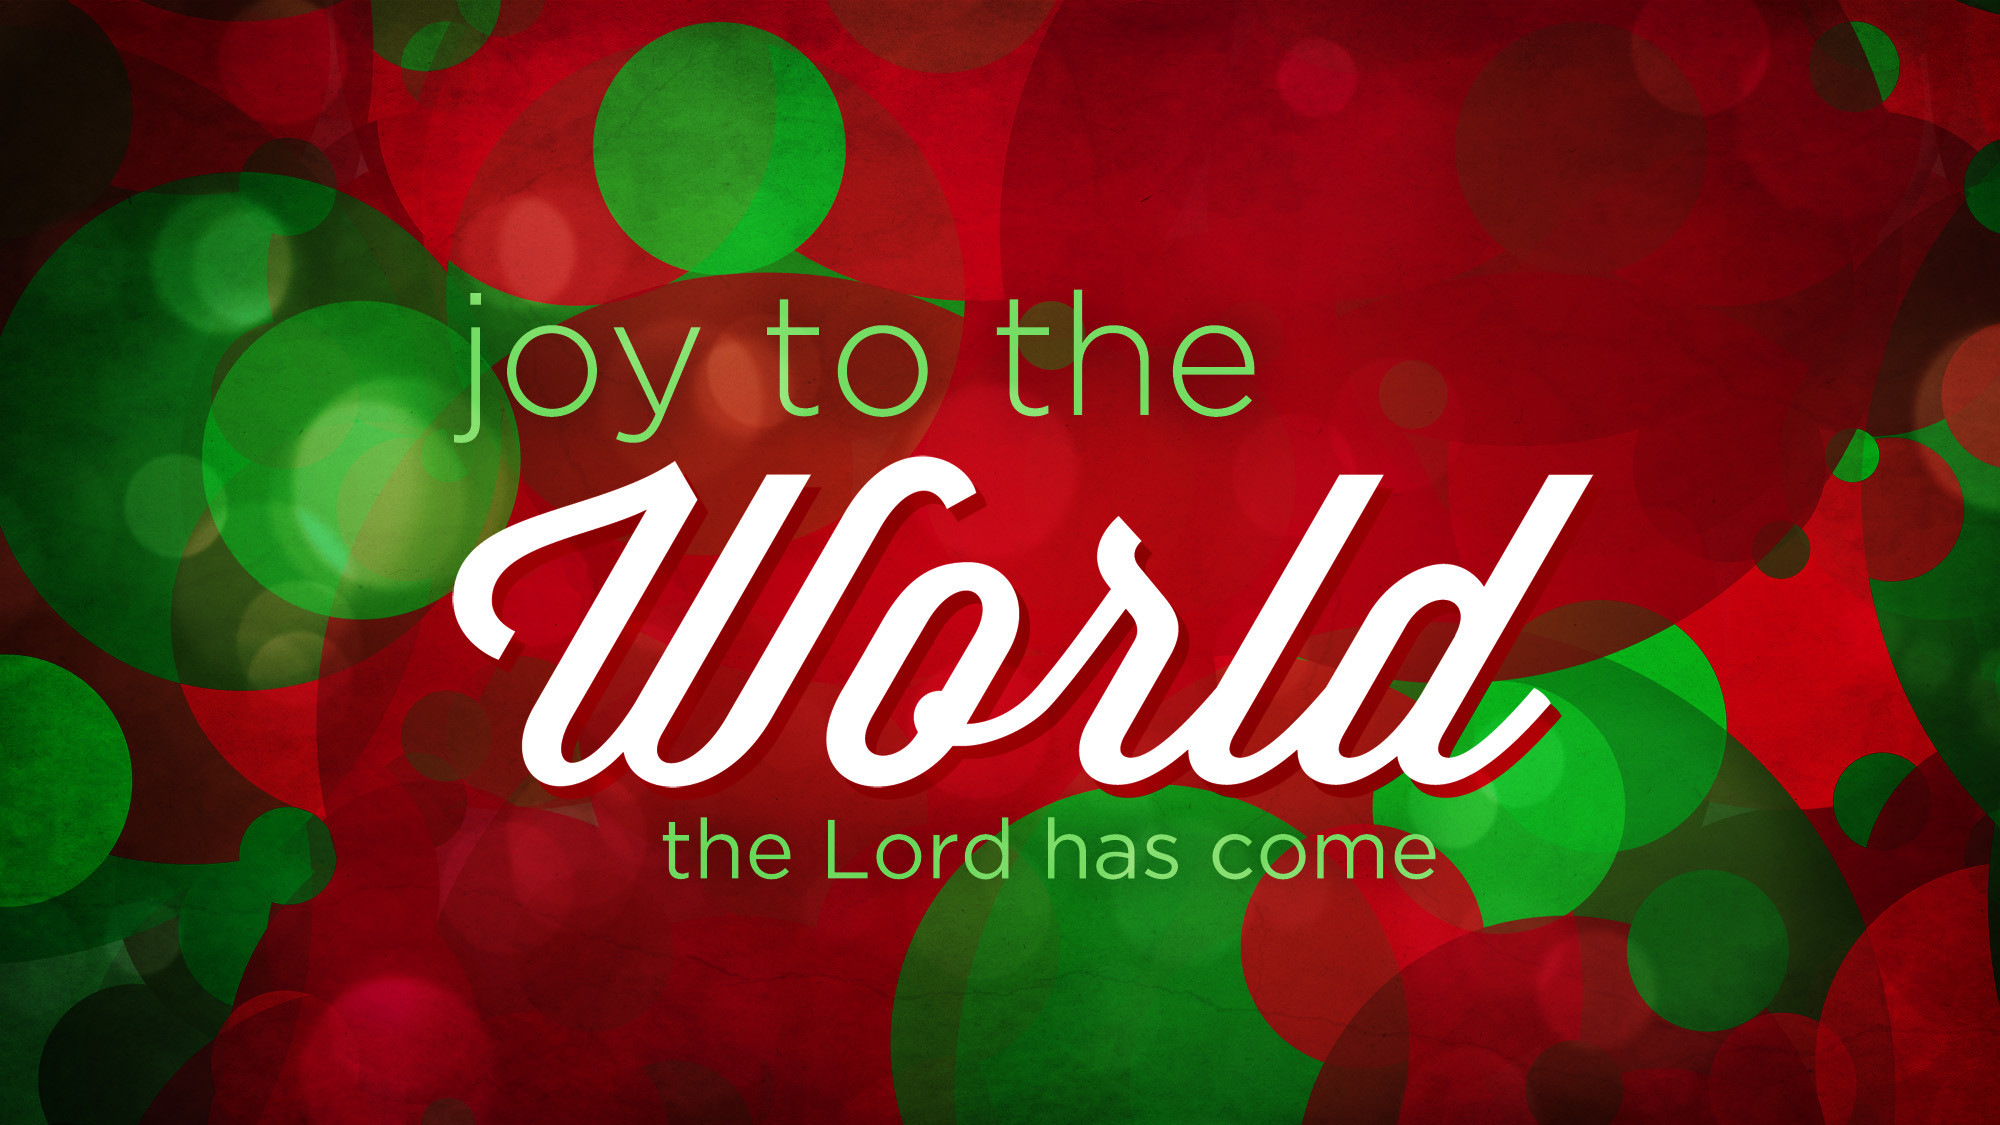 Ps98 joy-to-the-world | DWELLING in the Word